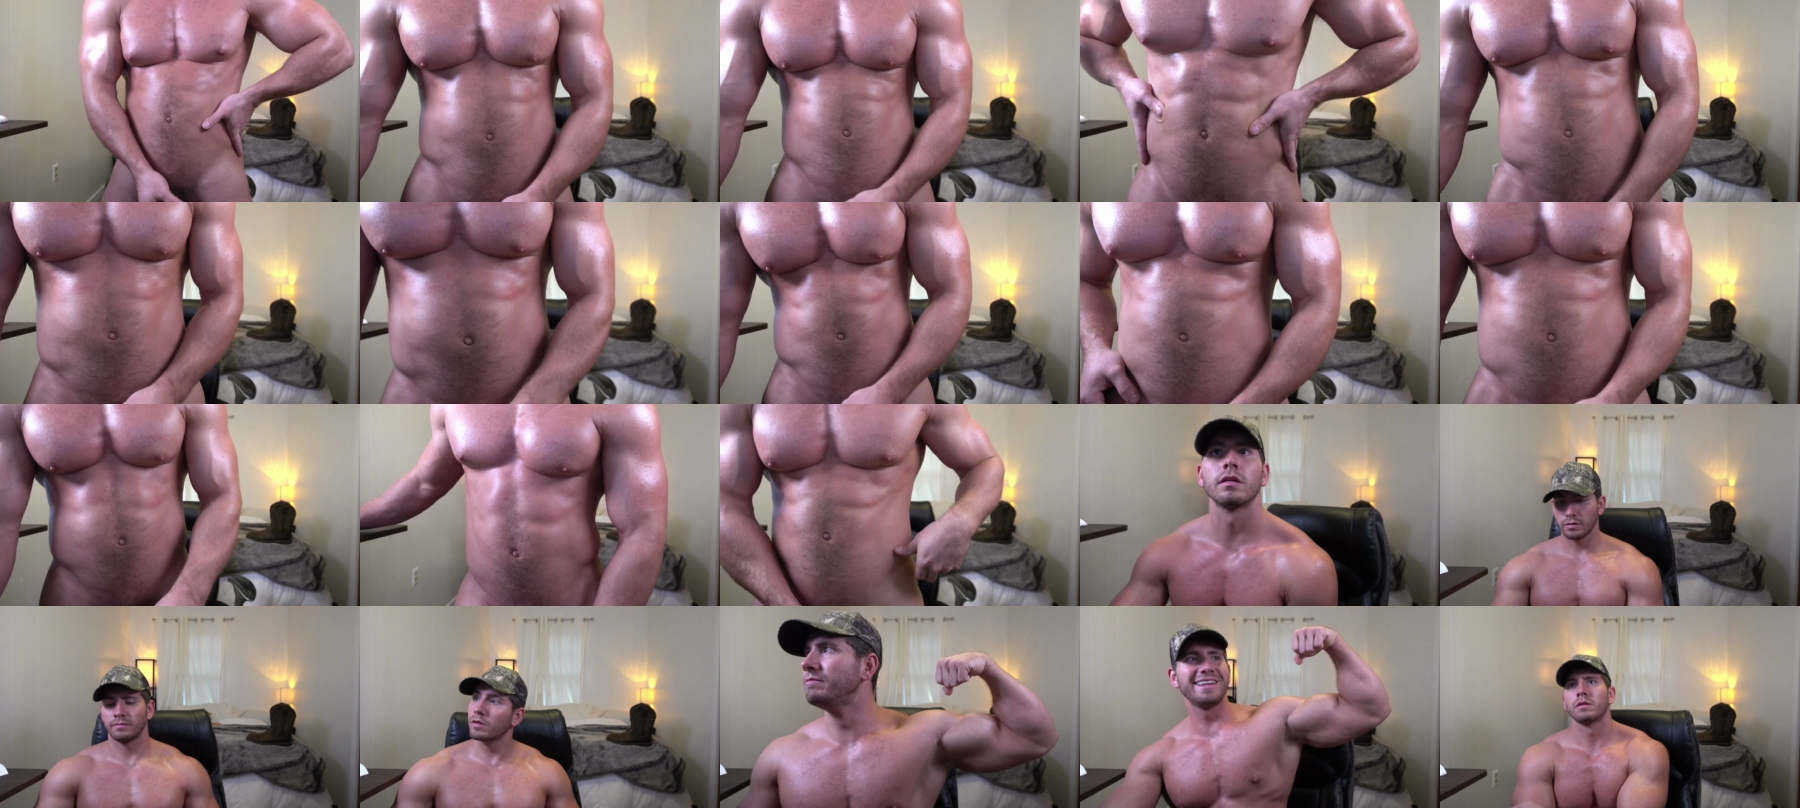 Hotmuscles6t9 Chaturbate 24-09-2021 Male Topless